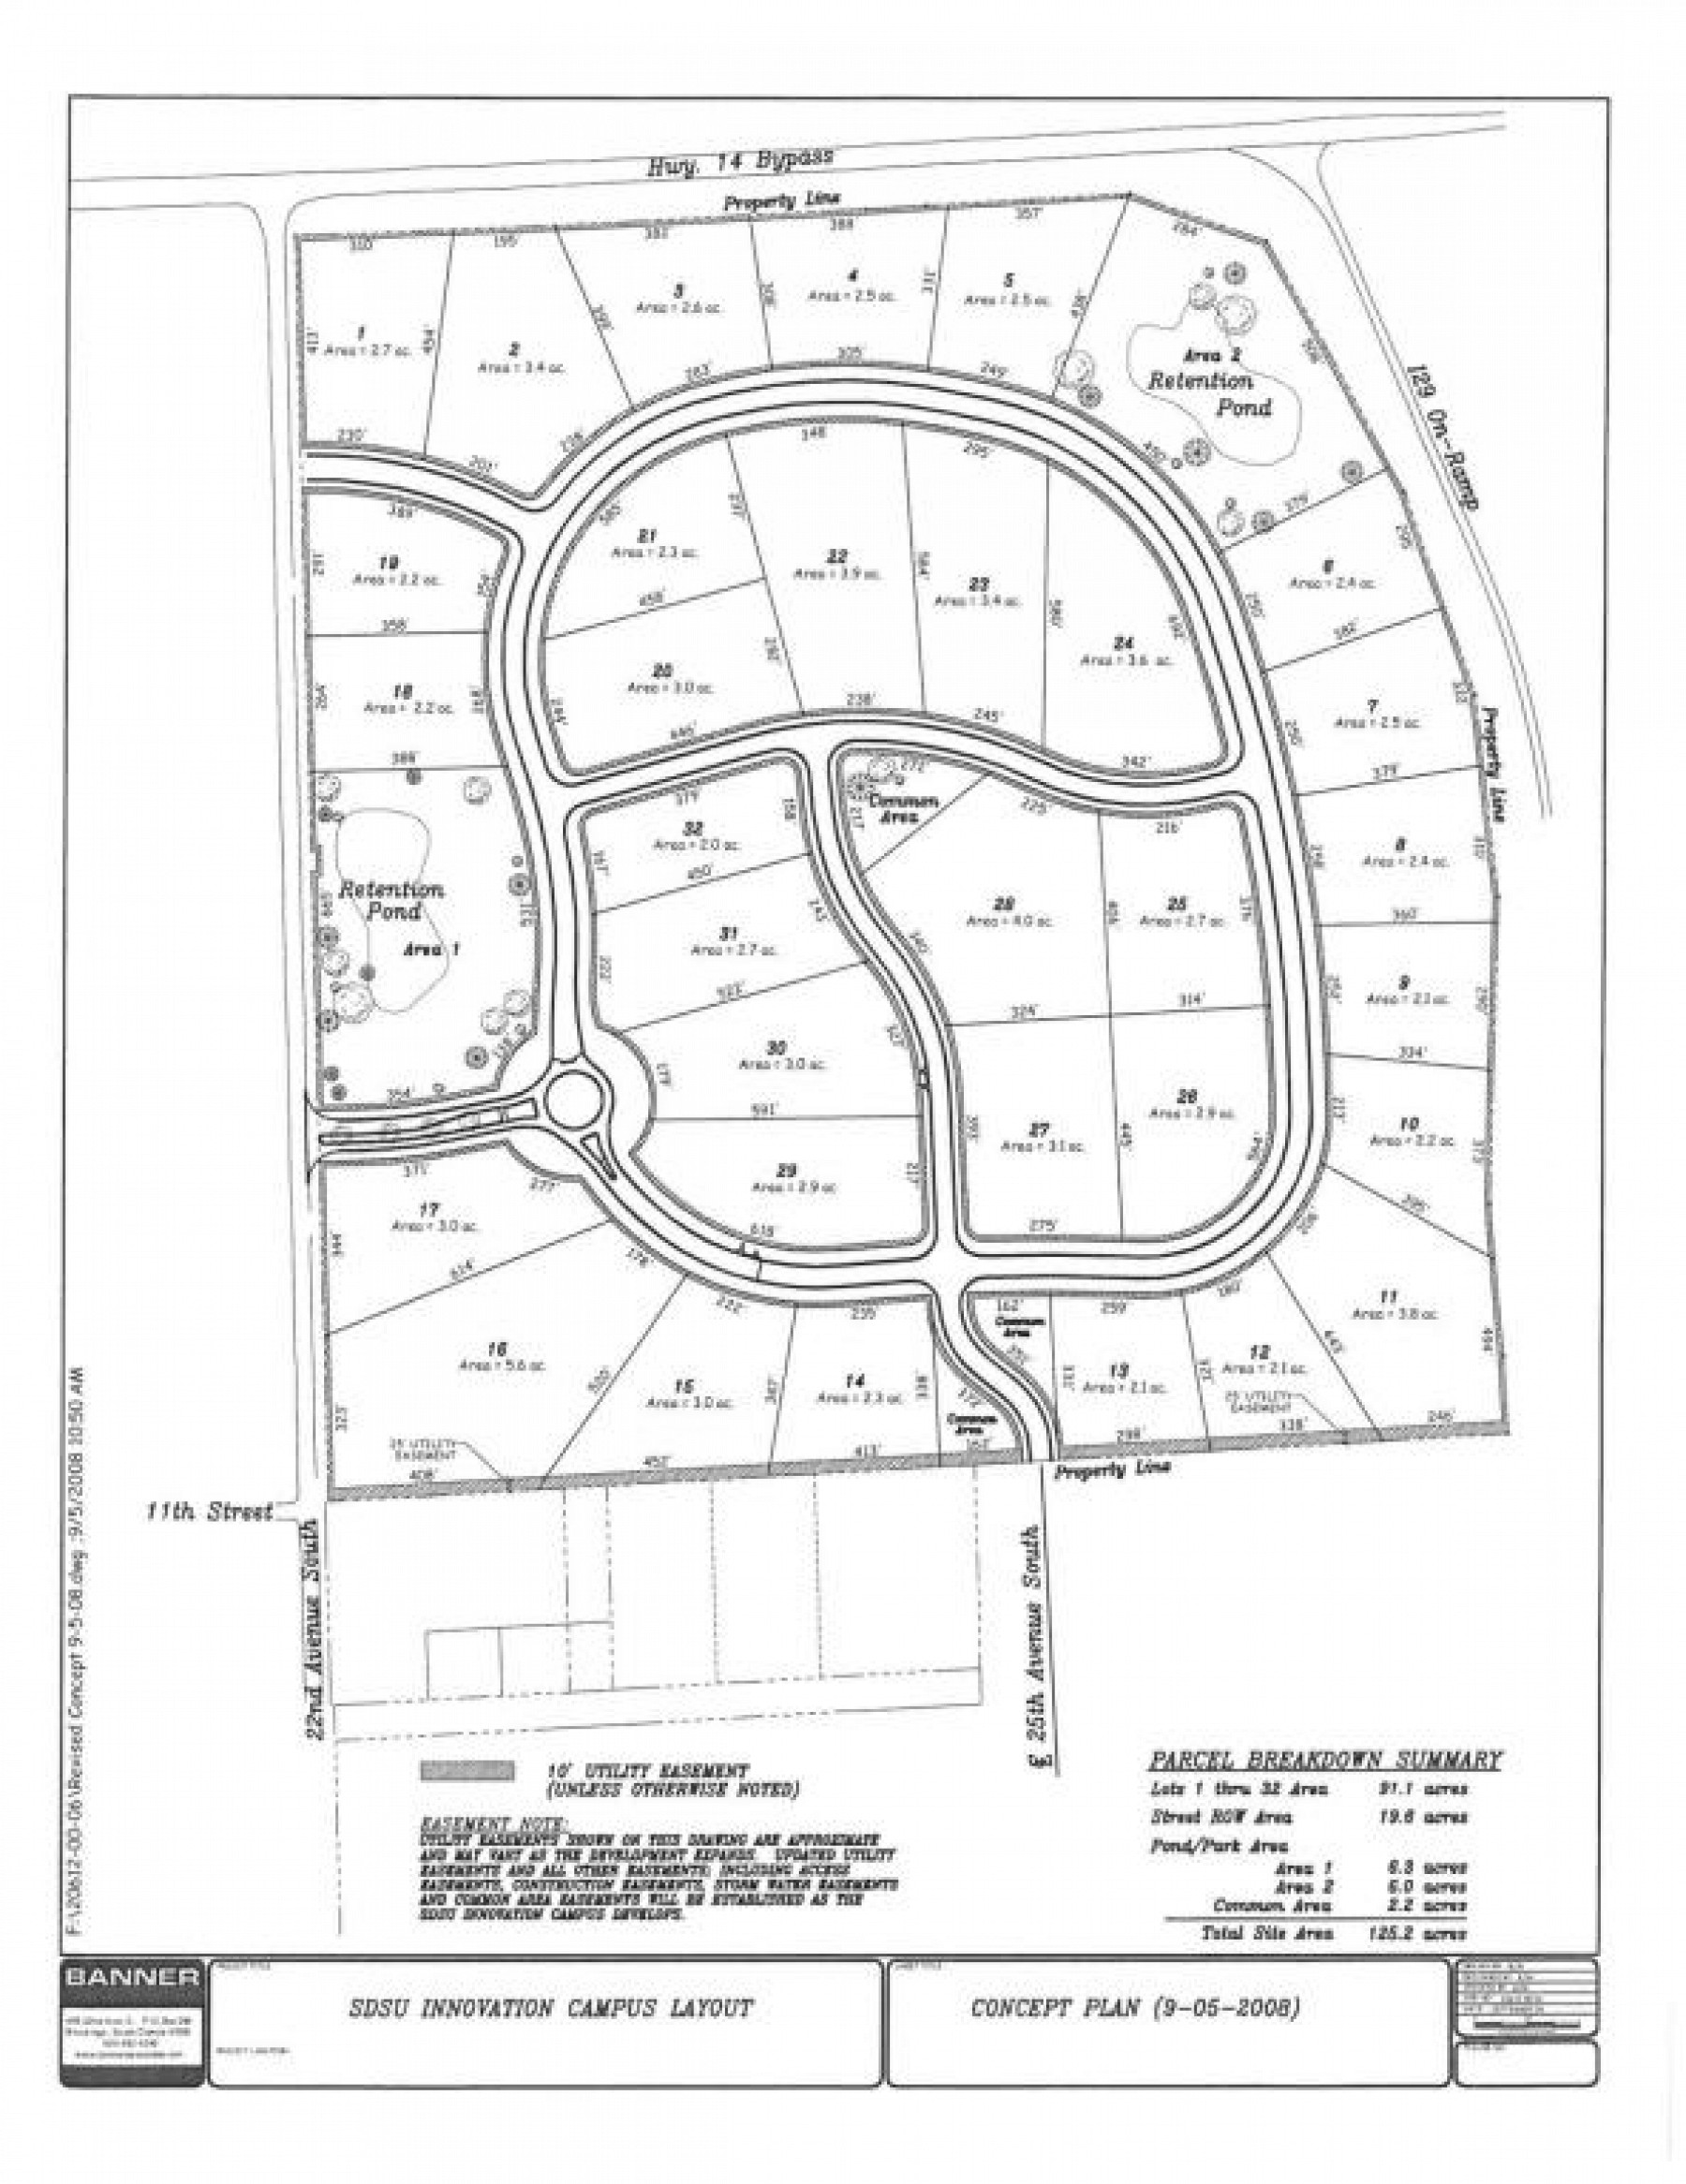 Lot 18 Innovation Campus, Brookings, SD 57006